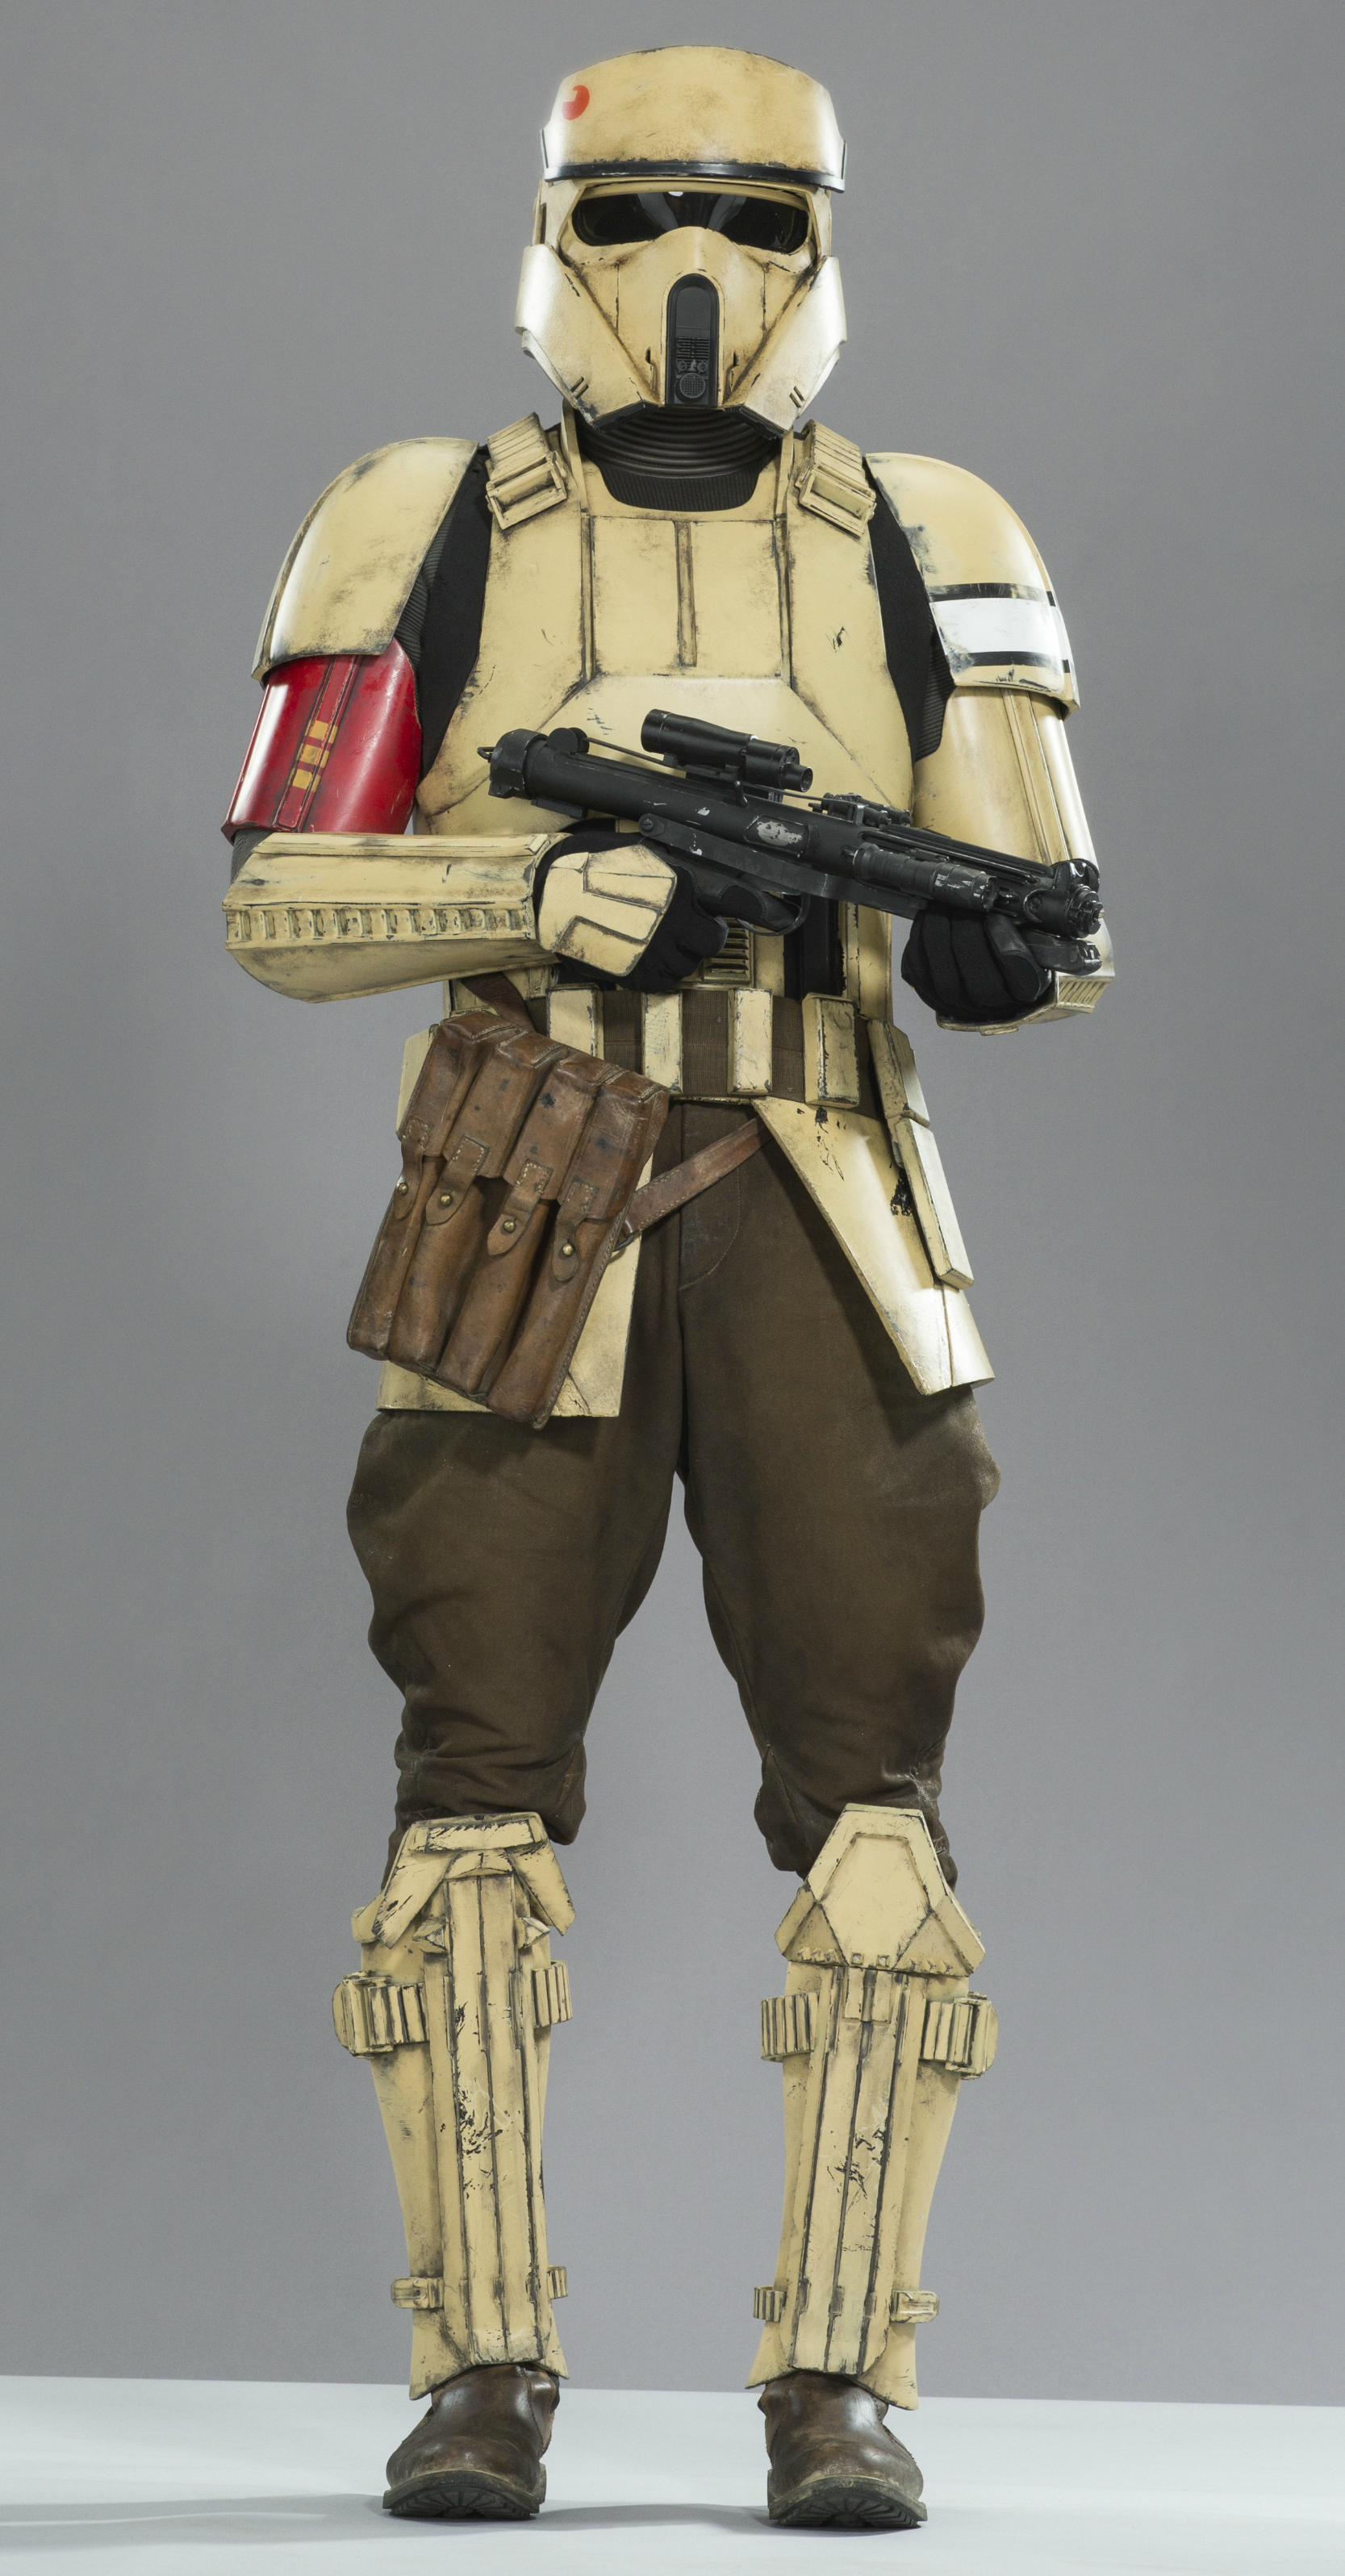 STAR WARS Rogue One Imperial Shore Trooper